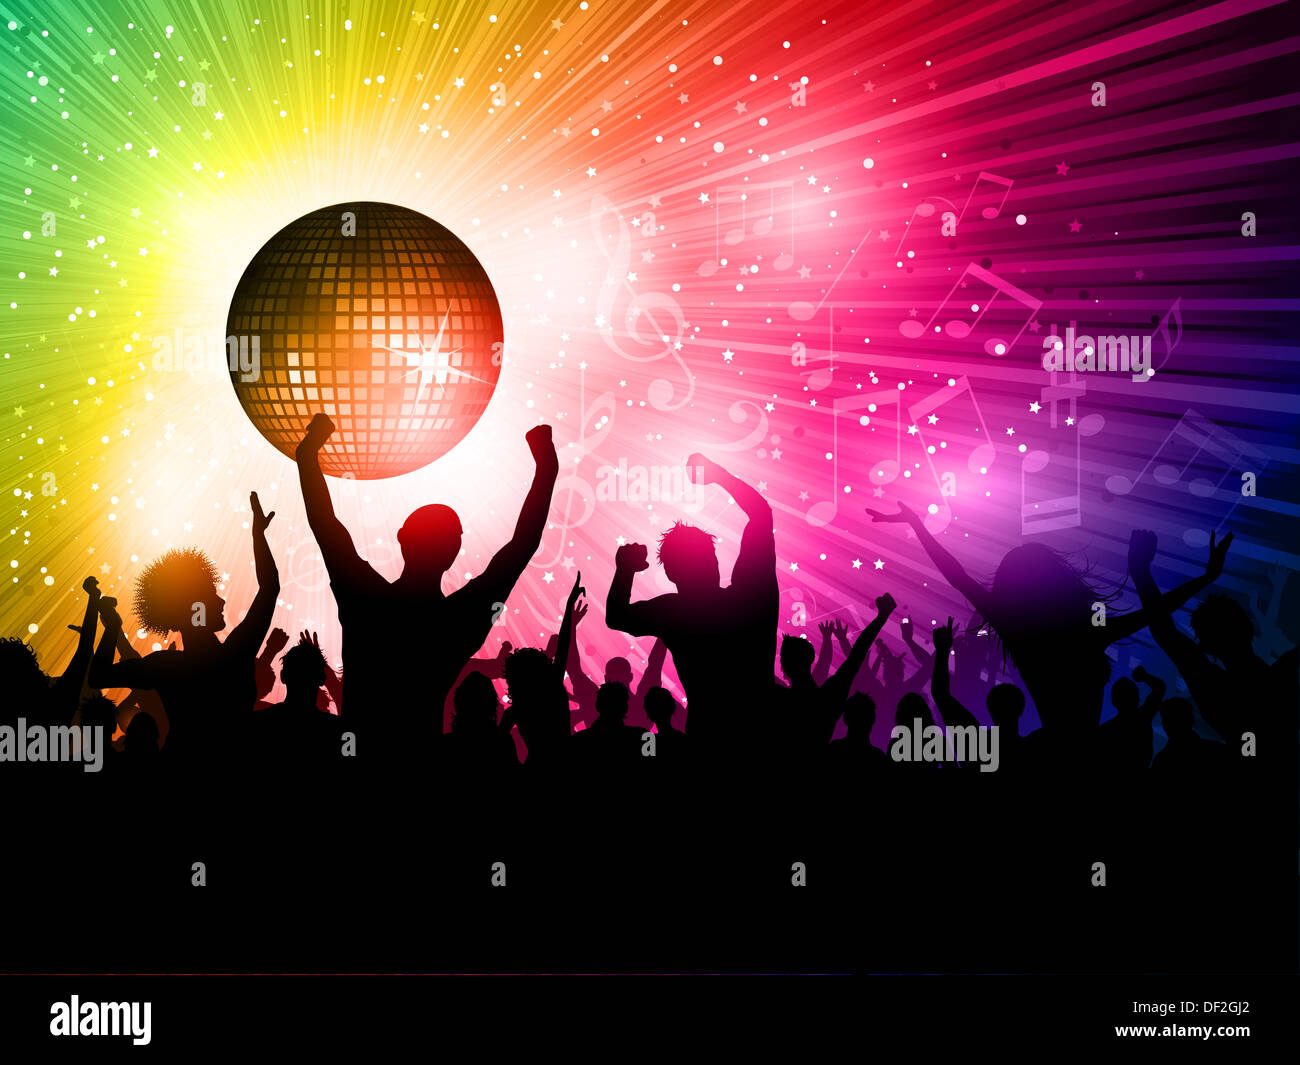 Free Girl Wallpaper Download Mobile Silhouette Of A Party Crowd On A Disco Ball Background